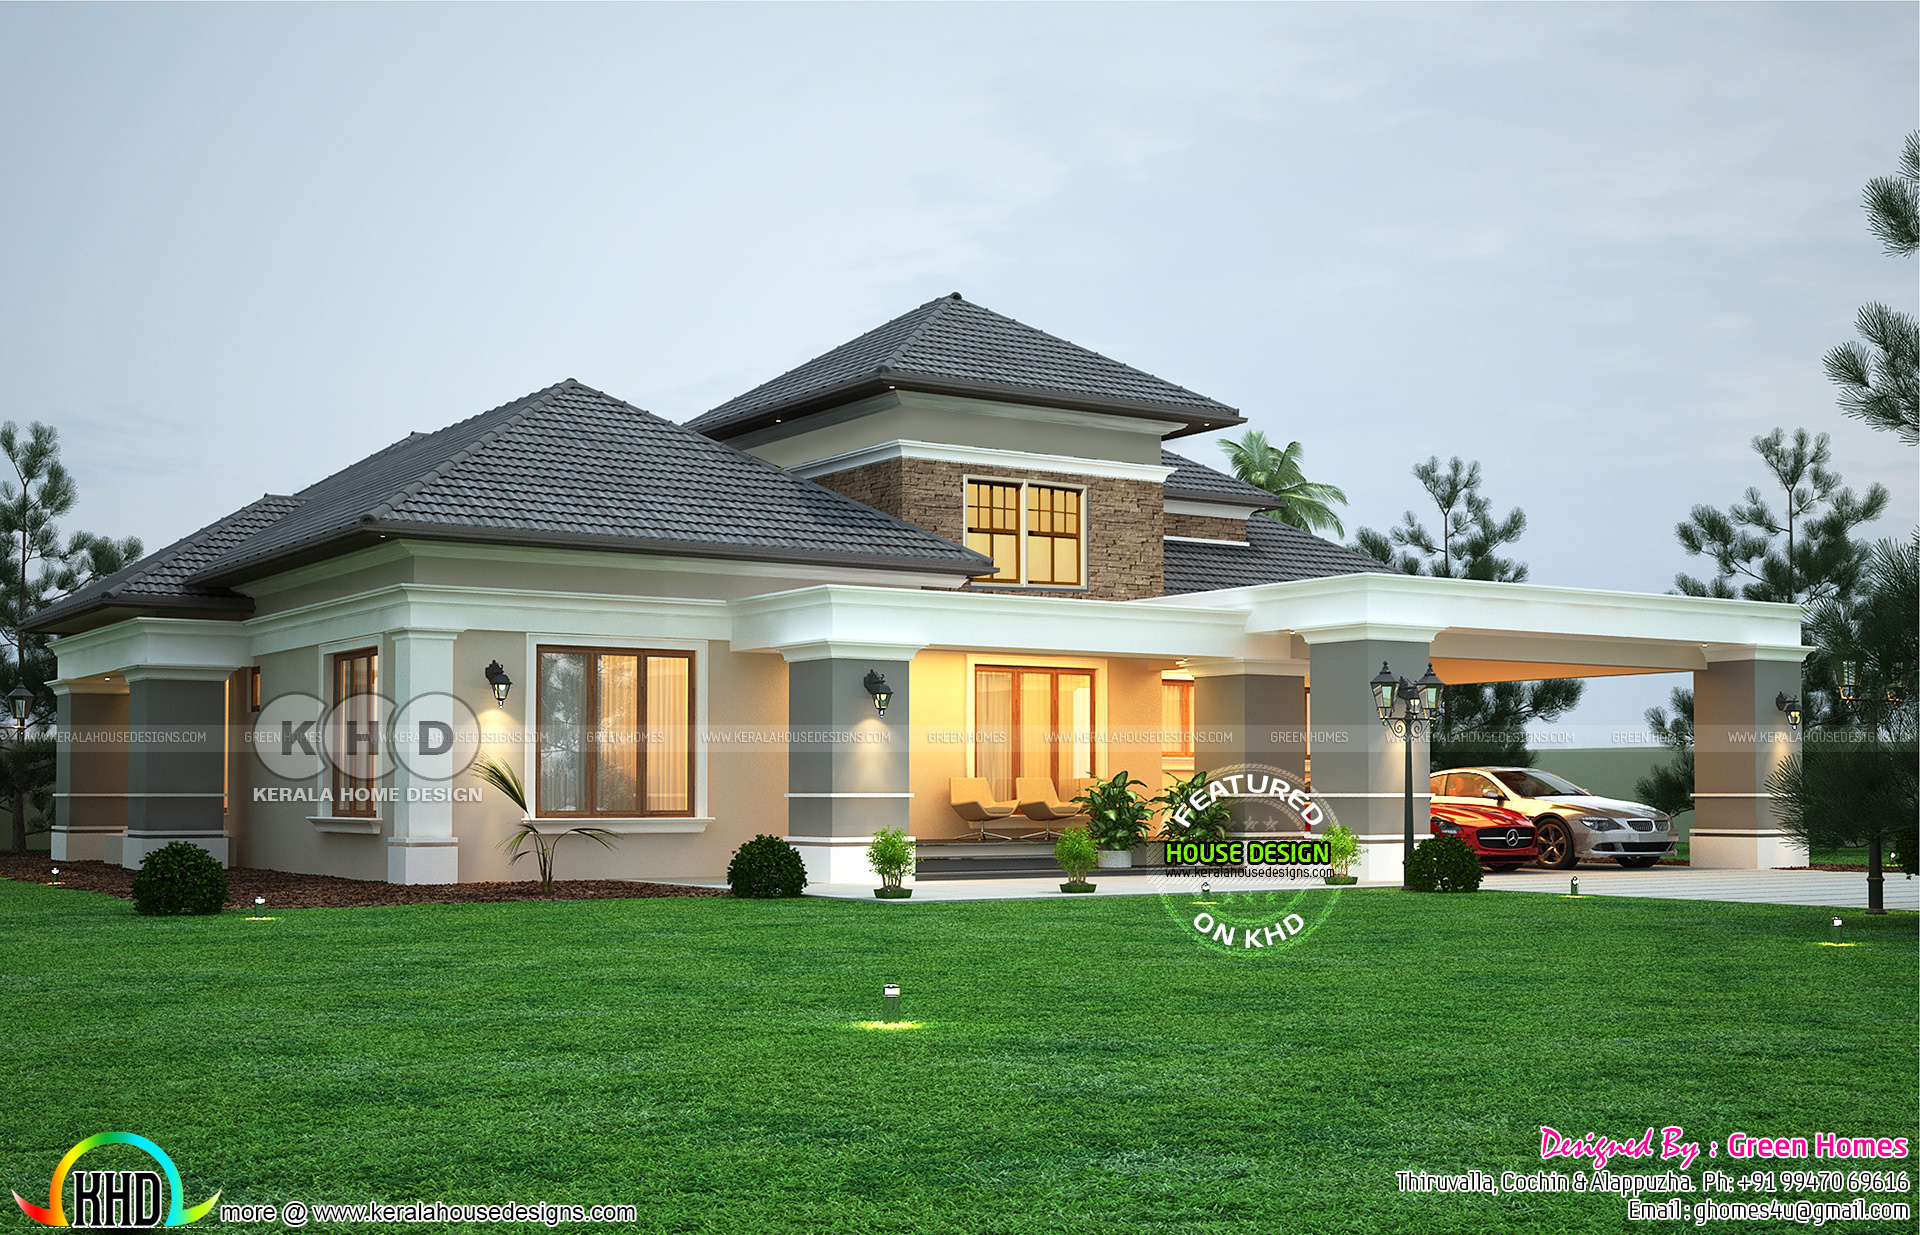 Elegant Sloping Roof Bungalow Design 2990 Sq Ft Kerala Home Design And Floor Plans 8000 Houses